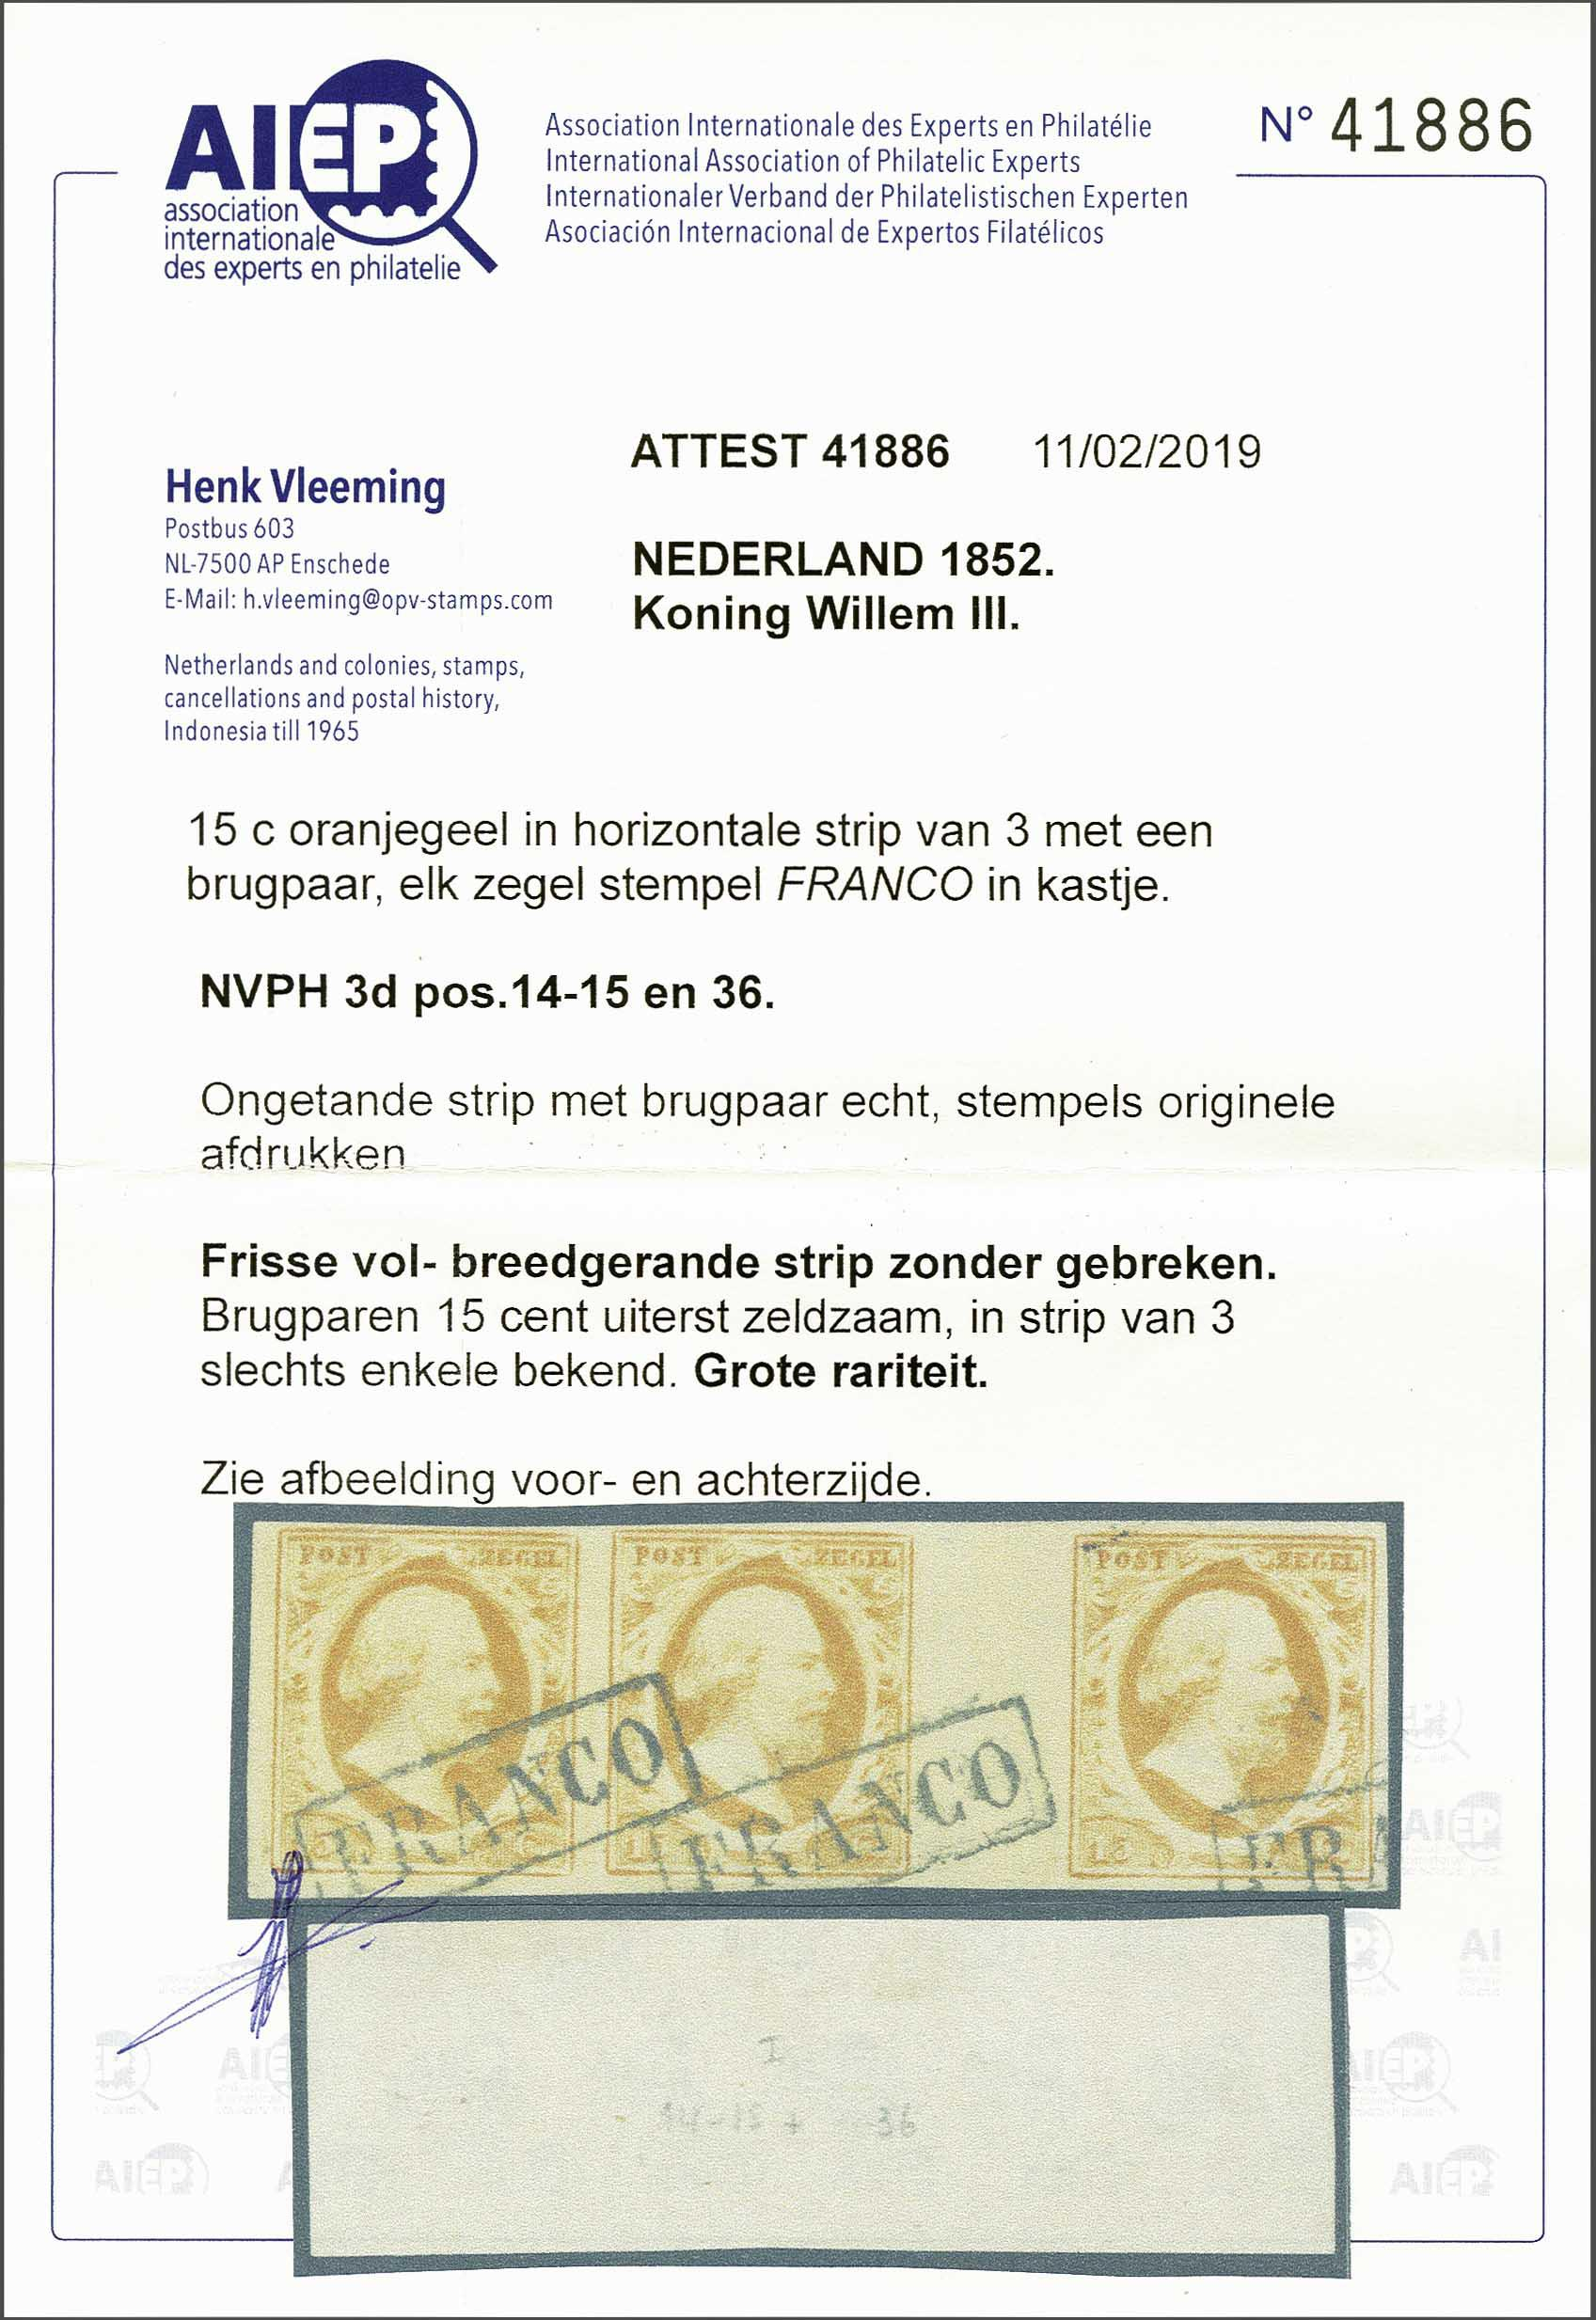 Lot 1719 - Netherlands and former colonies NL 1852 King William III -  Corinphila Veilingen Auction 245-246 Day 3 - Netherlands and former colonies - Single lots, Collections and lots, Boxes and literature